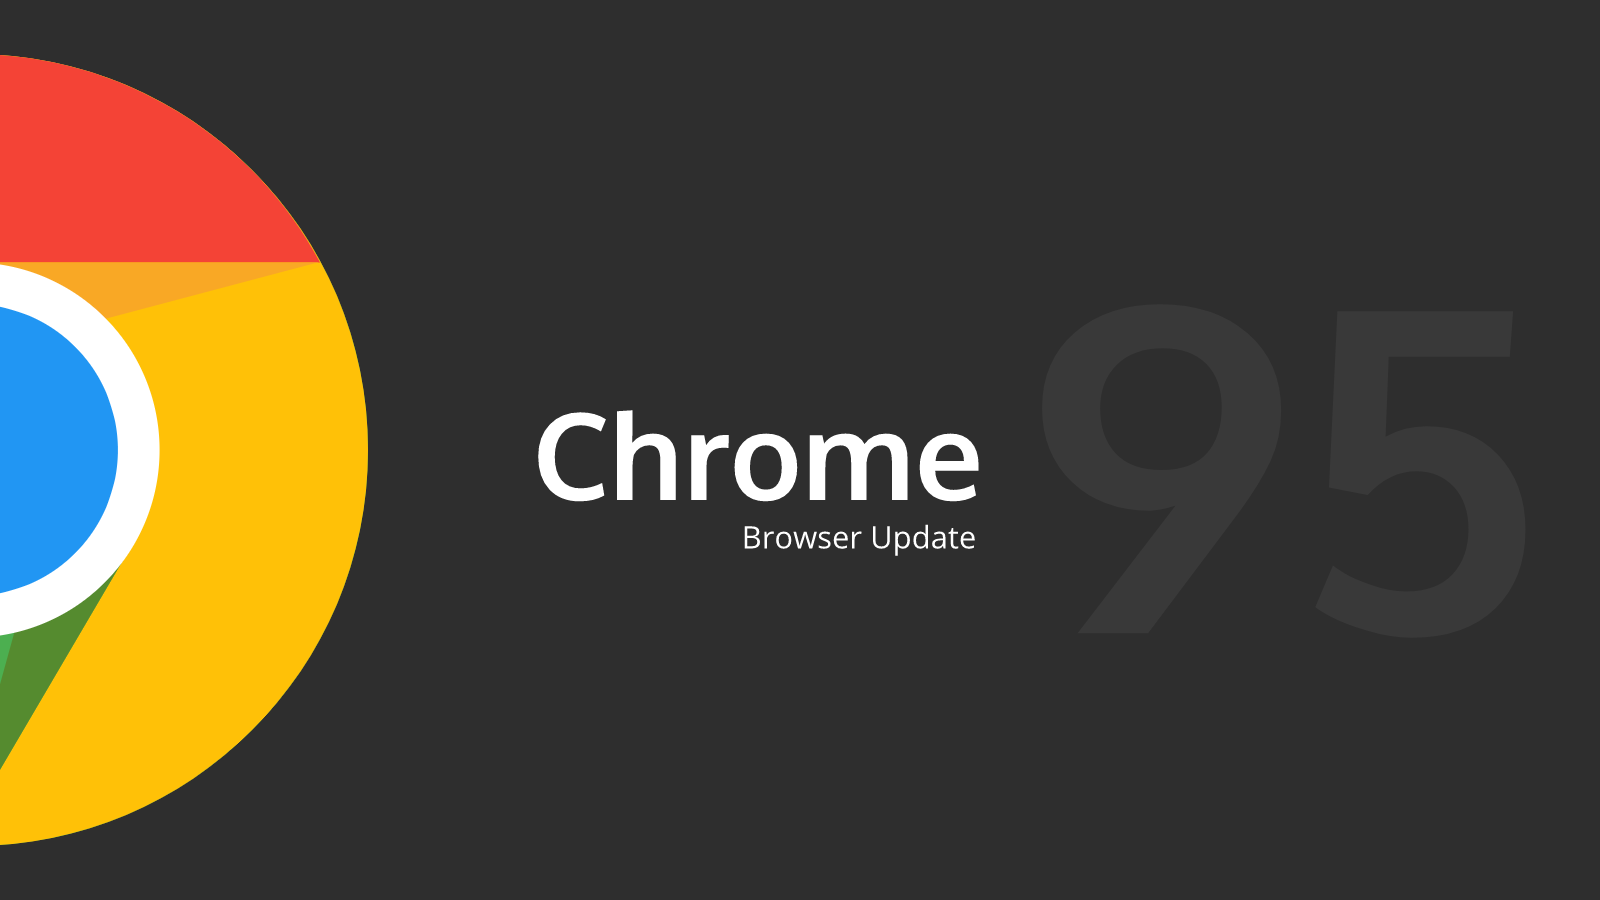 Chrome 95 lets you save tab groups, improves security payments, and more